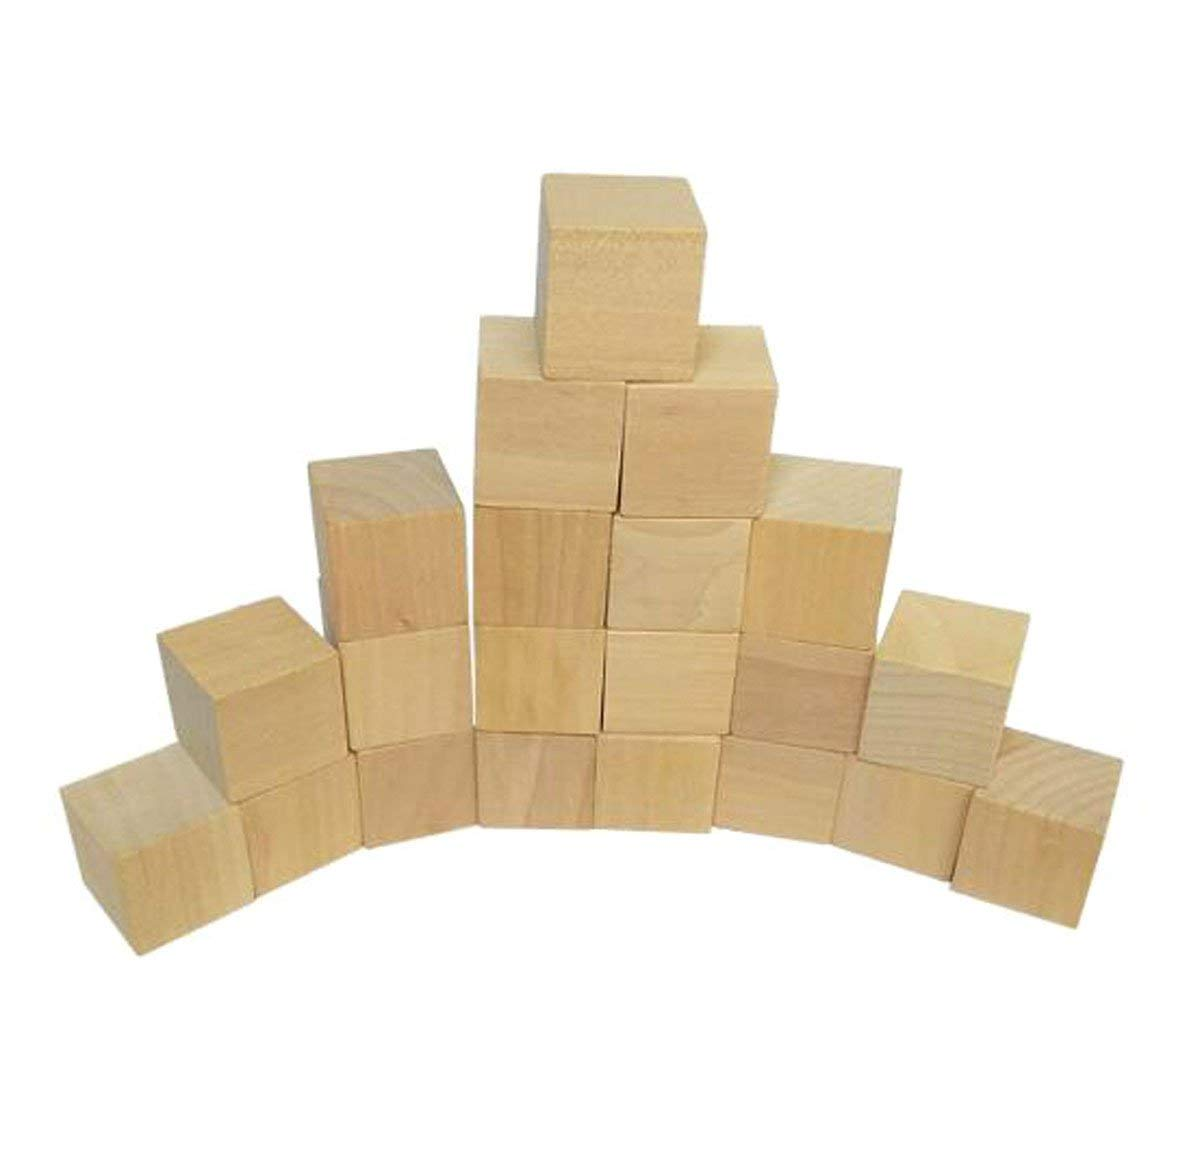 50 Pieces Blank Wooden Cubes - Wood Square Blocks - Unfinished Craft Wood Blocks for DIY Crafts Carving Art Supplies (20 x 20 x 20mm)